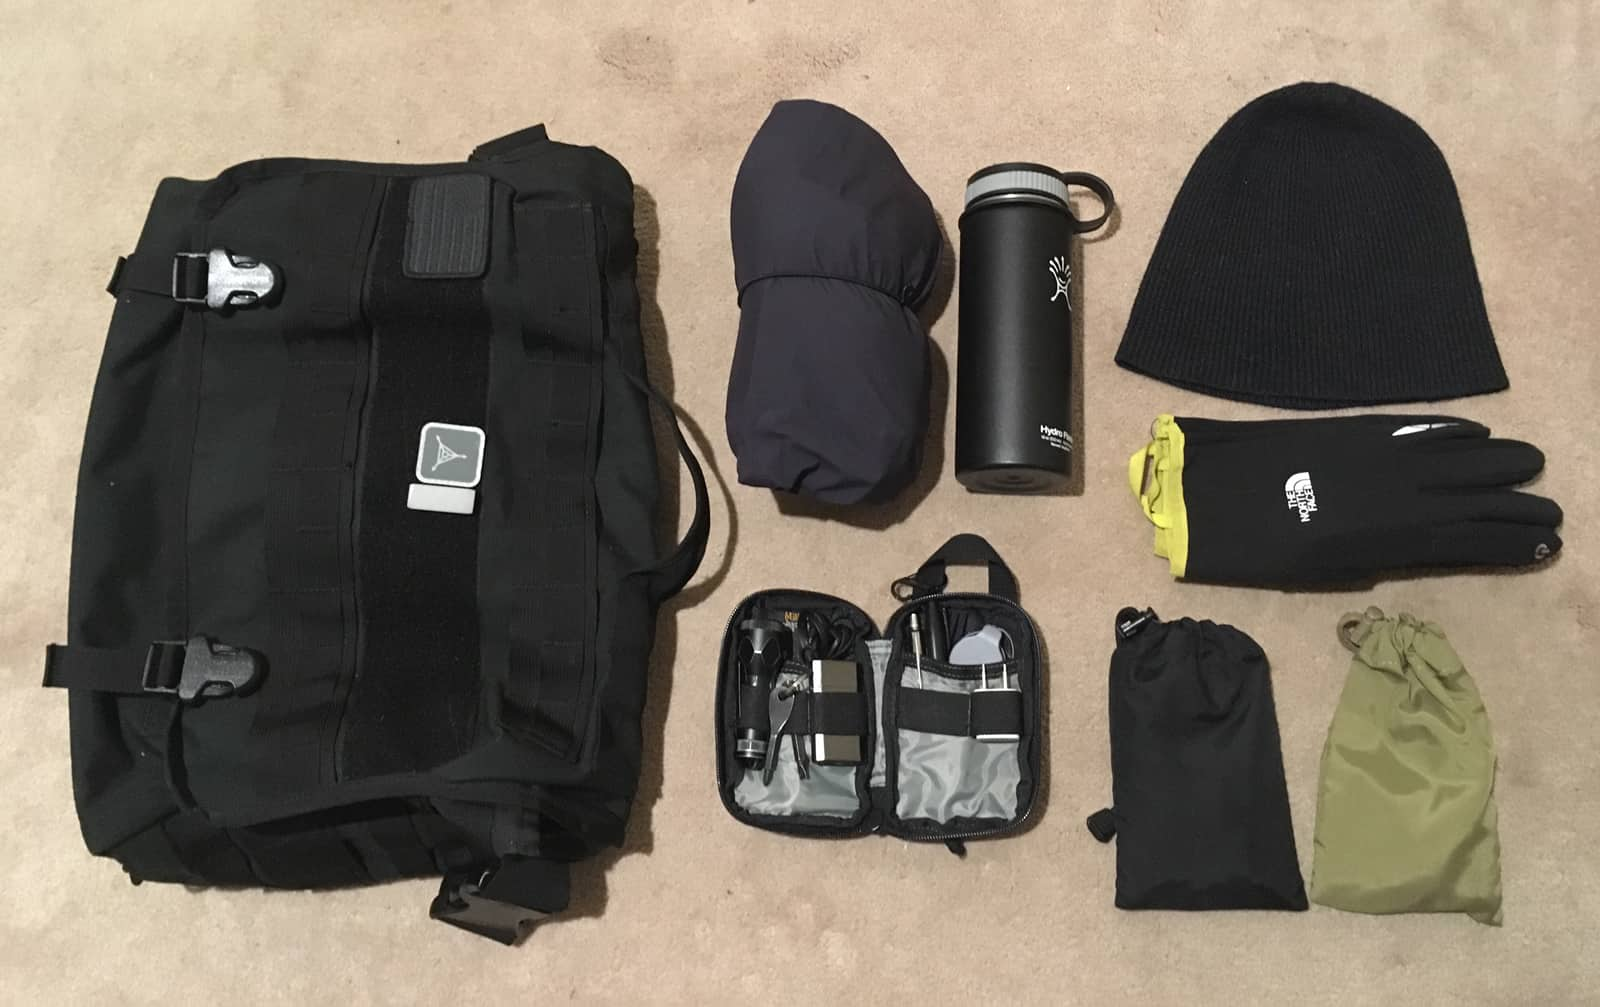 Loadout: EDC Office and Travel Kit packconfig1